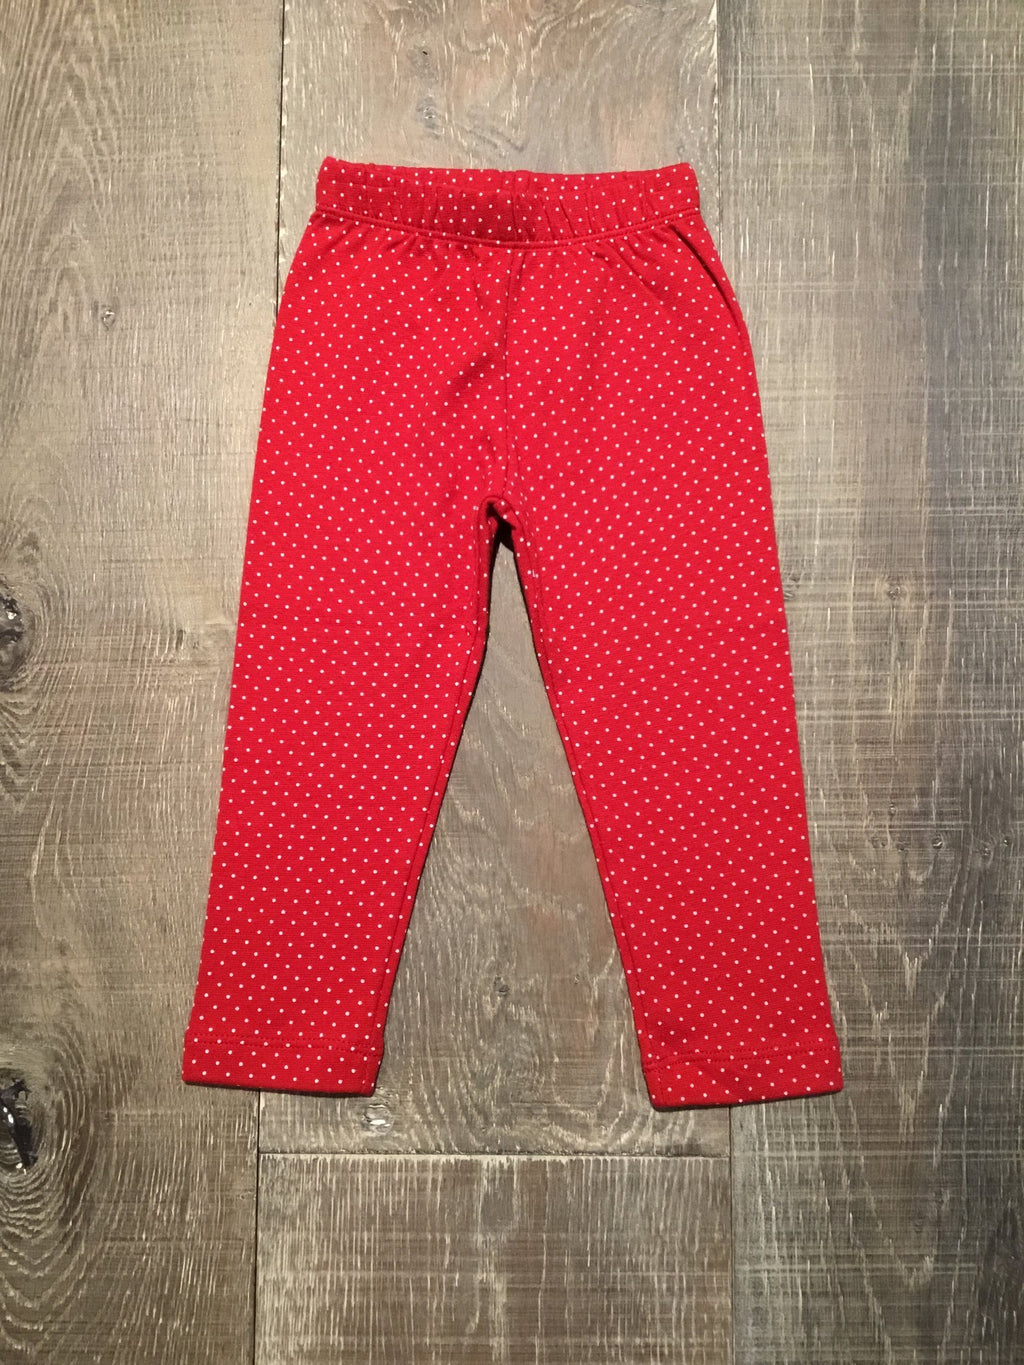 Toddler Dotted Leggings by Luigi